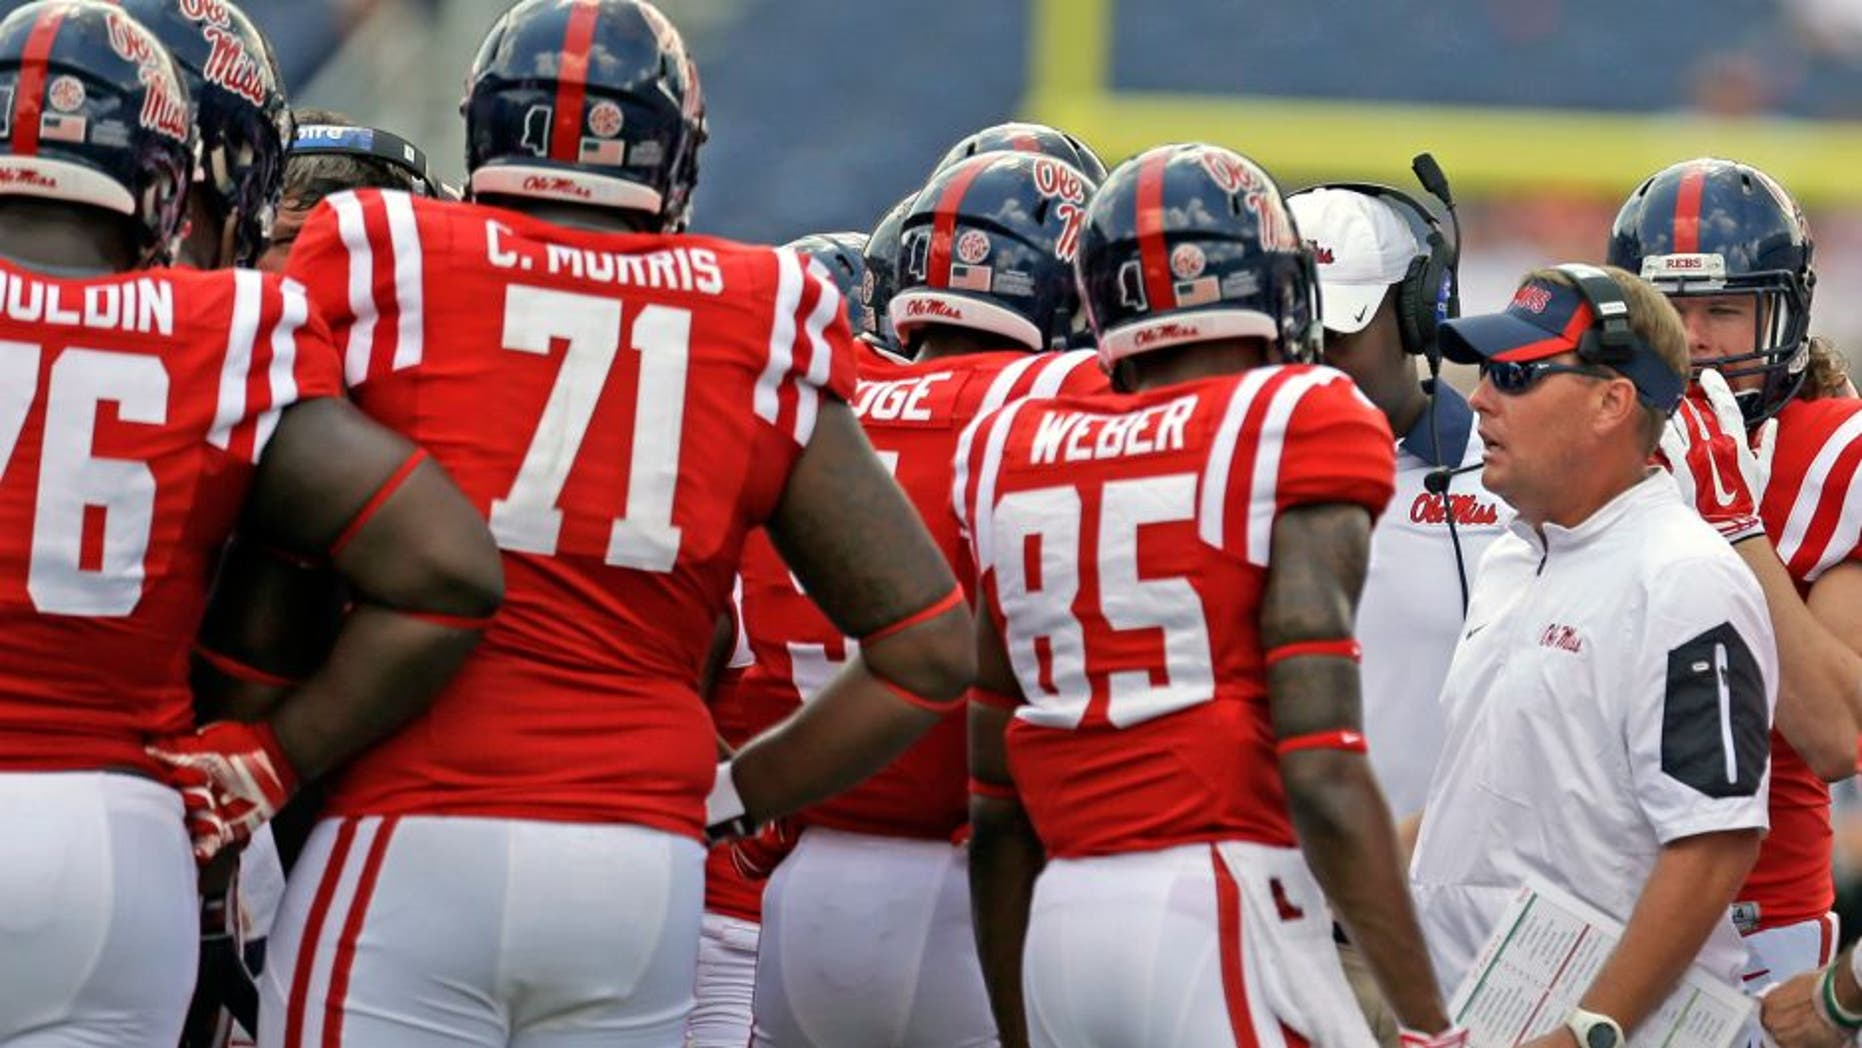 OXFORD MS -SEPTEMBER 5: Coach Hugh Freeze of the Mississippi Rebels talks to players during the second half of a NCAA college football game against the Tennessee Martin Skyhawks at Vaught-Hemingway Stadium on September 5, 2015 in Oxford, Mississippi. (Photo by Butch Dill/Getty Images)